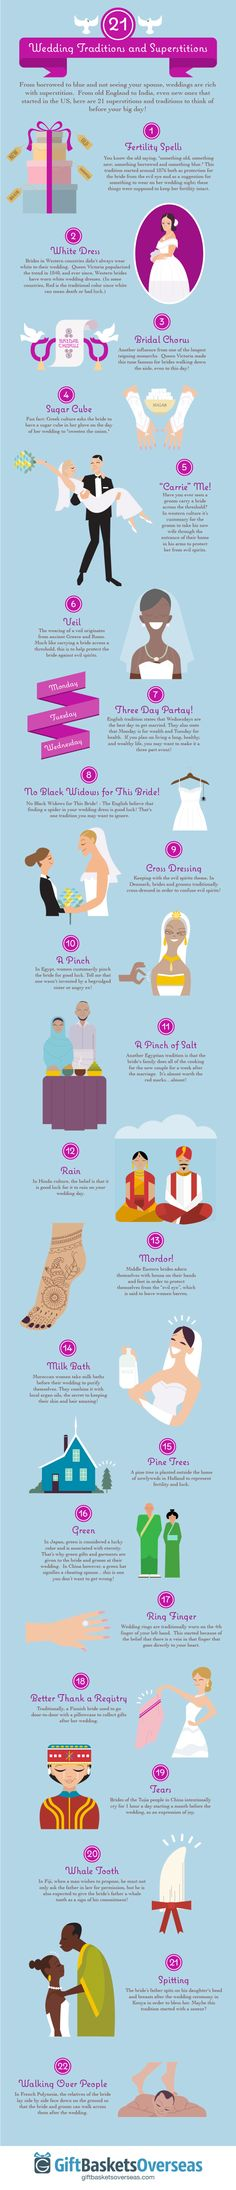 The Writing on the Wall: Wedding Superstitions and Traditions